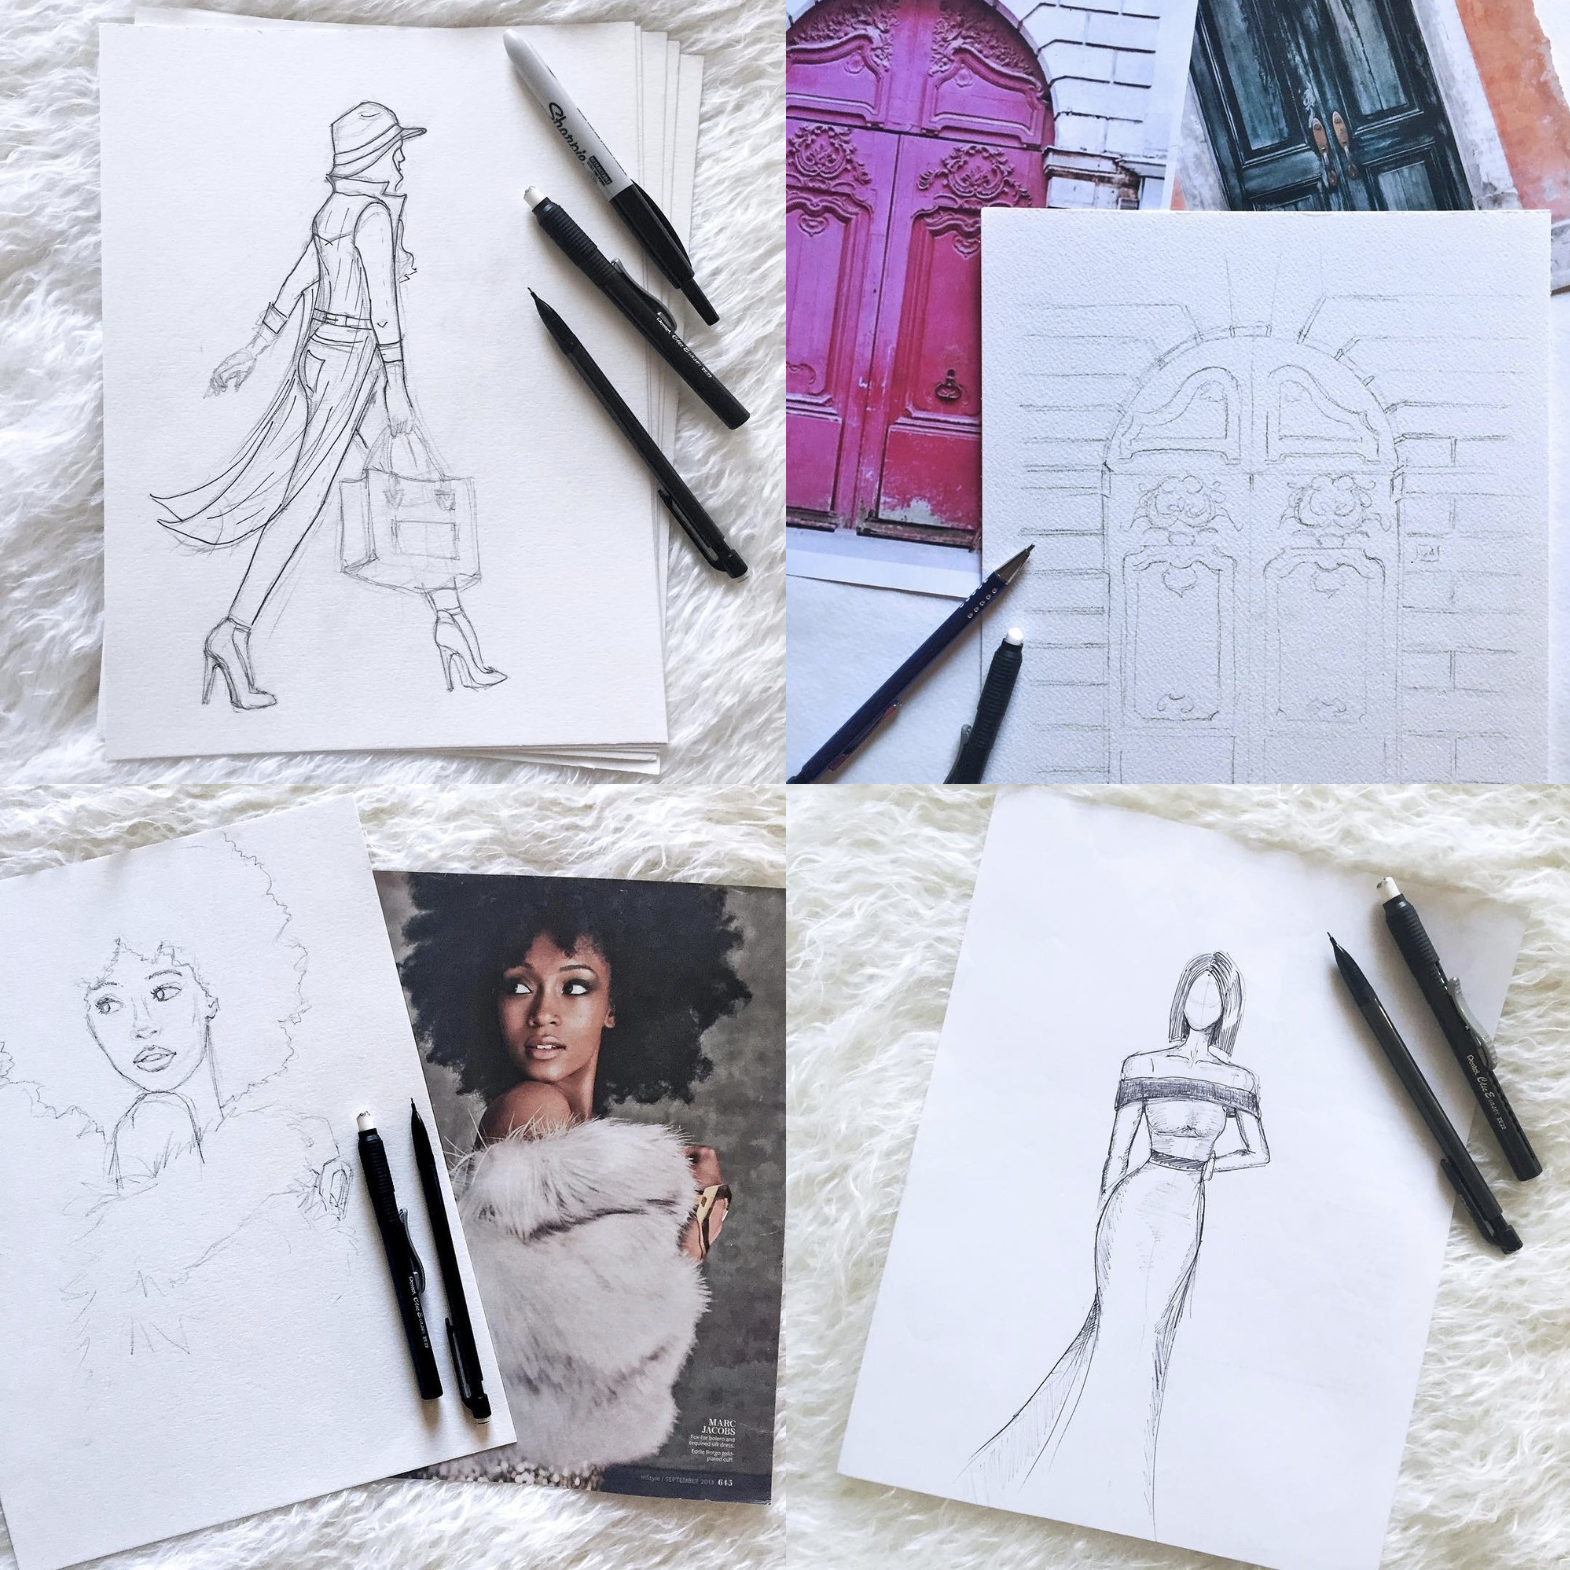 Lesson #2. I sought comfort in overly planning each piece. - CASE STUDY: ALL THE PIECES WITH OBSESSIVE PENCIL SKETCHINGMy inexperience meant I needed a crutch to help me break through the blank page that was staring back at me. In my case, it was pre-planning everything to the exact stroke, which is not surprising in hindsight knowing my personality. But this too is okay, because I was in study mode (actually artists are always in study mode), trying to understand the curves, contrasts, shadows, and proportions of the pieces I was working on. It forced to to slow down and focus on how details formed a bigger picture, and notice patterns that would soon become muscle memory.